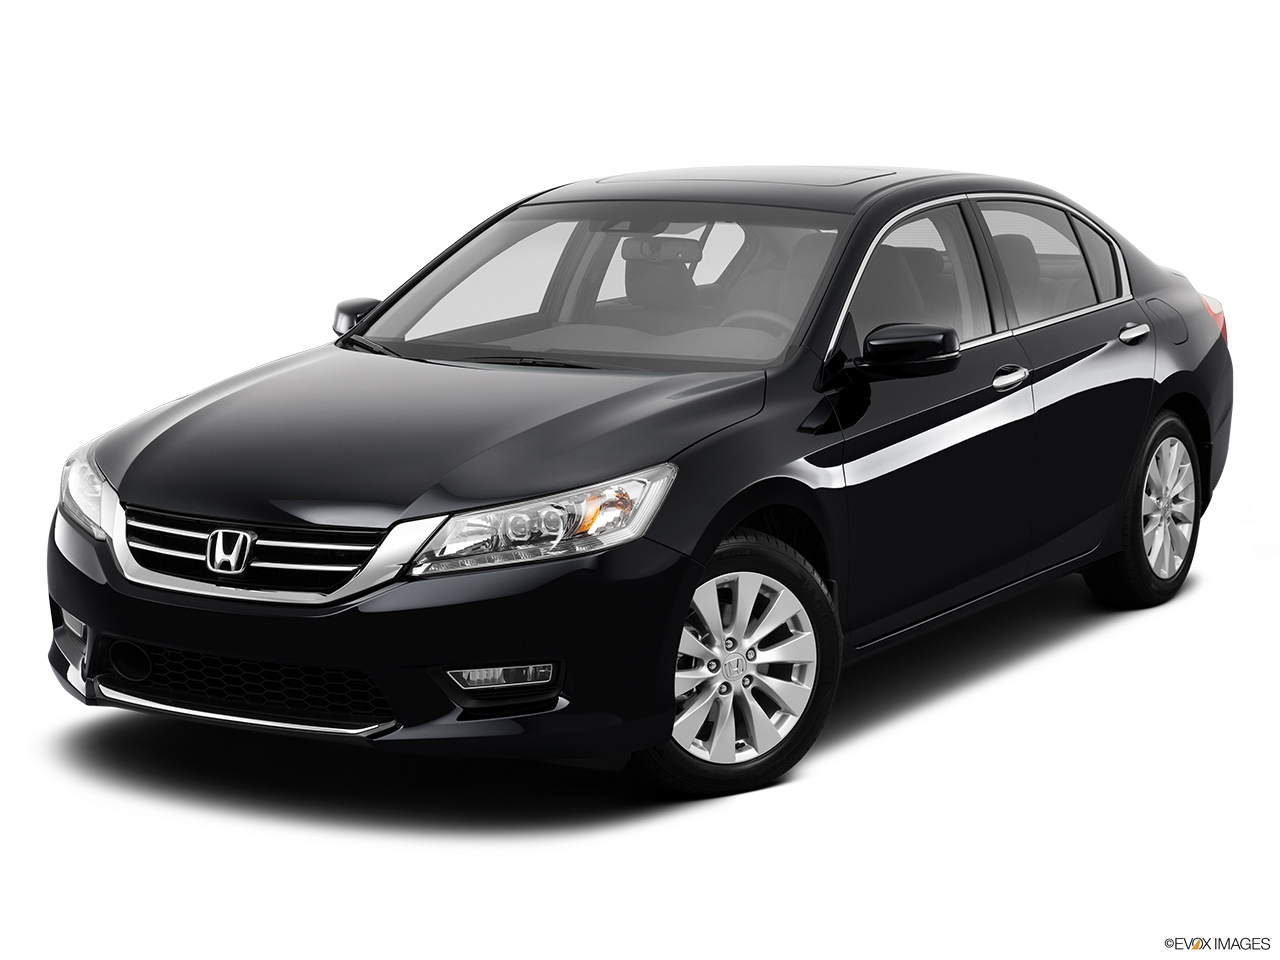 2014 honda accord sedan v6 automatic touring for 2014 honda accord sedan